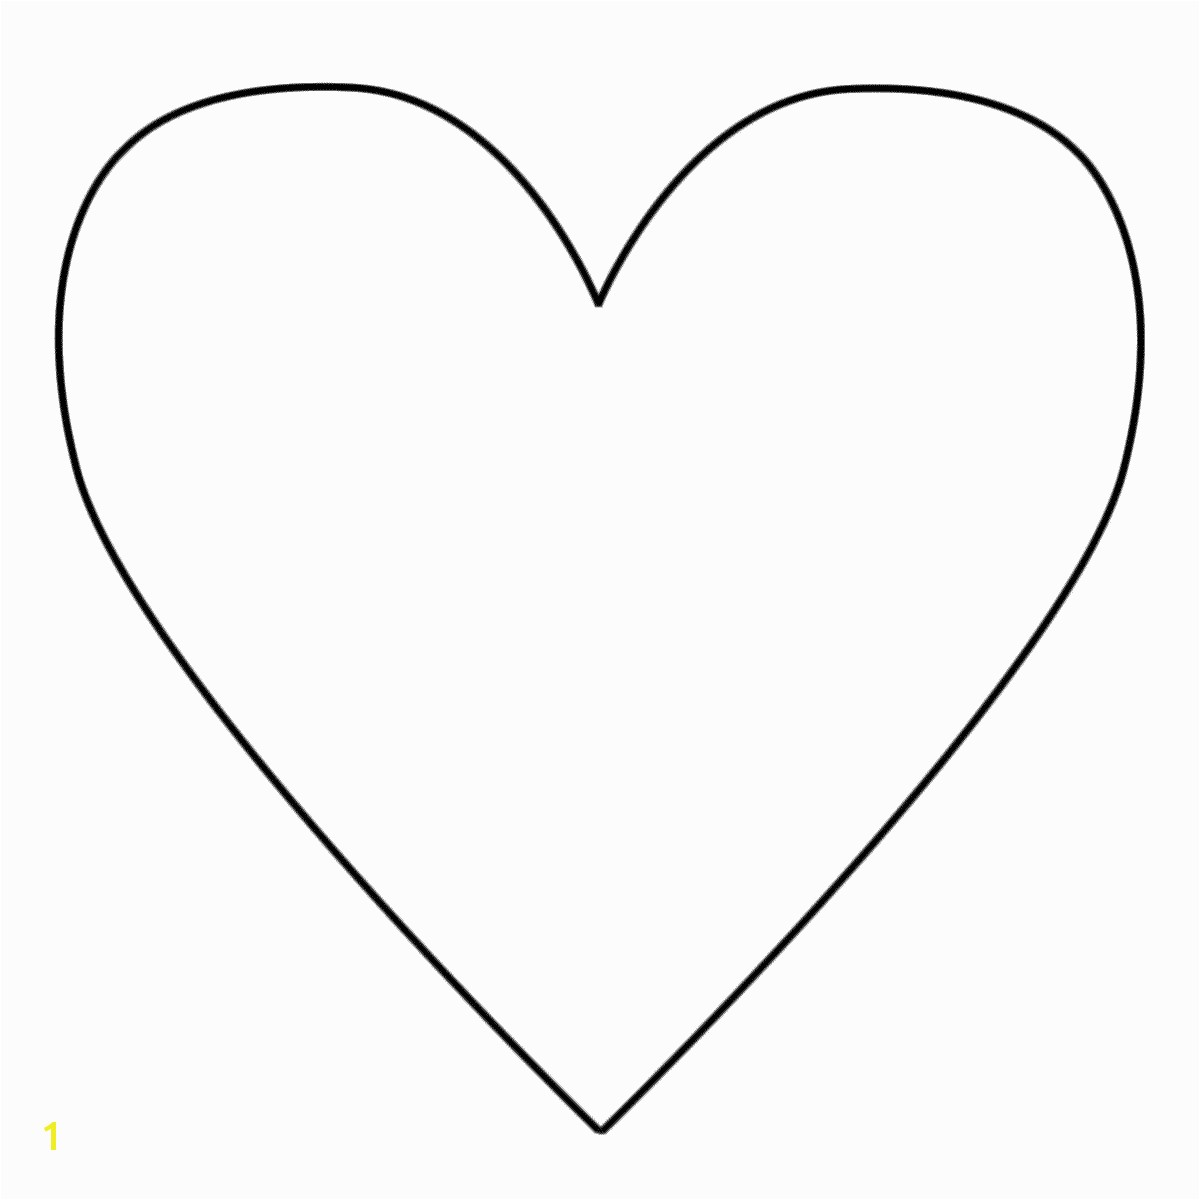 35 good heart template for cutouts for heart animals